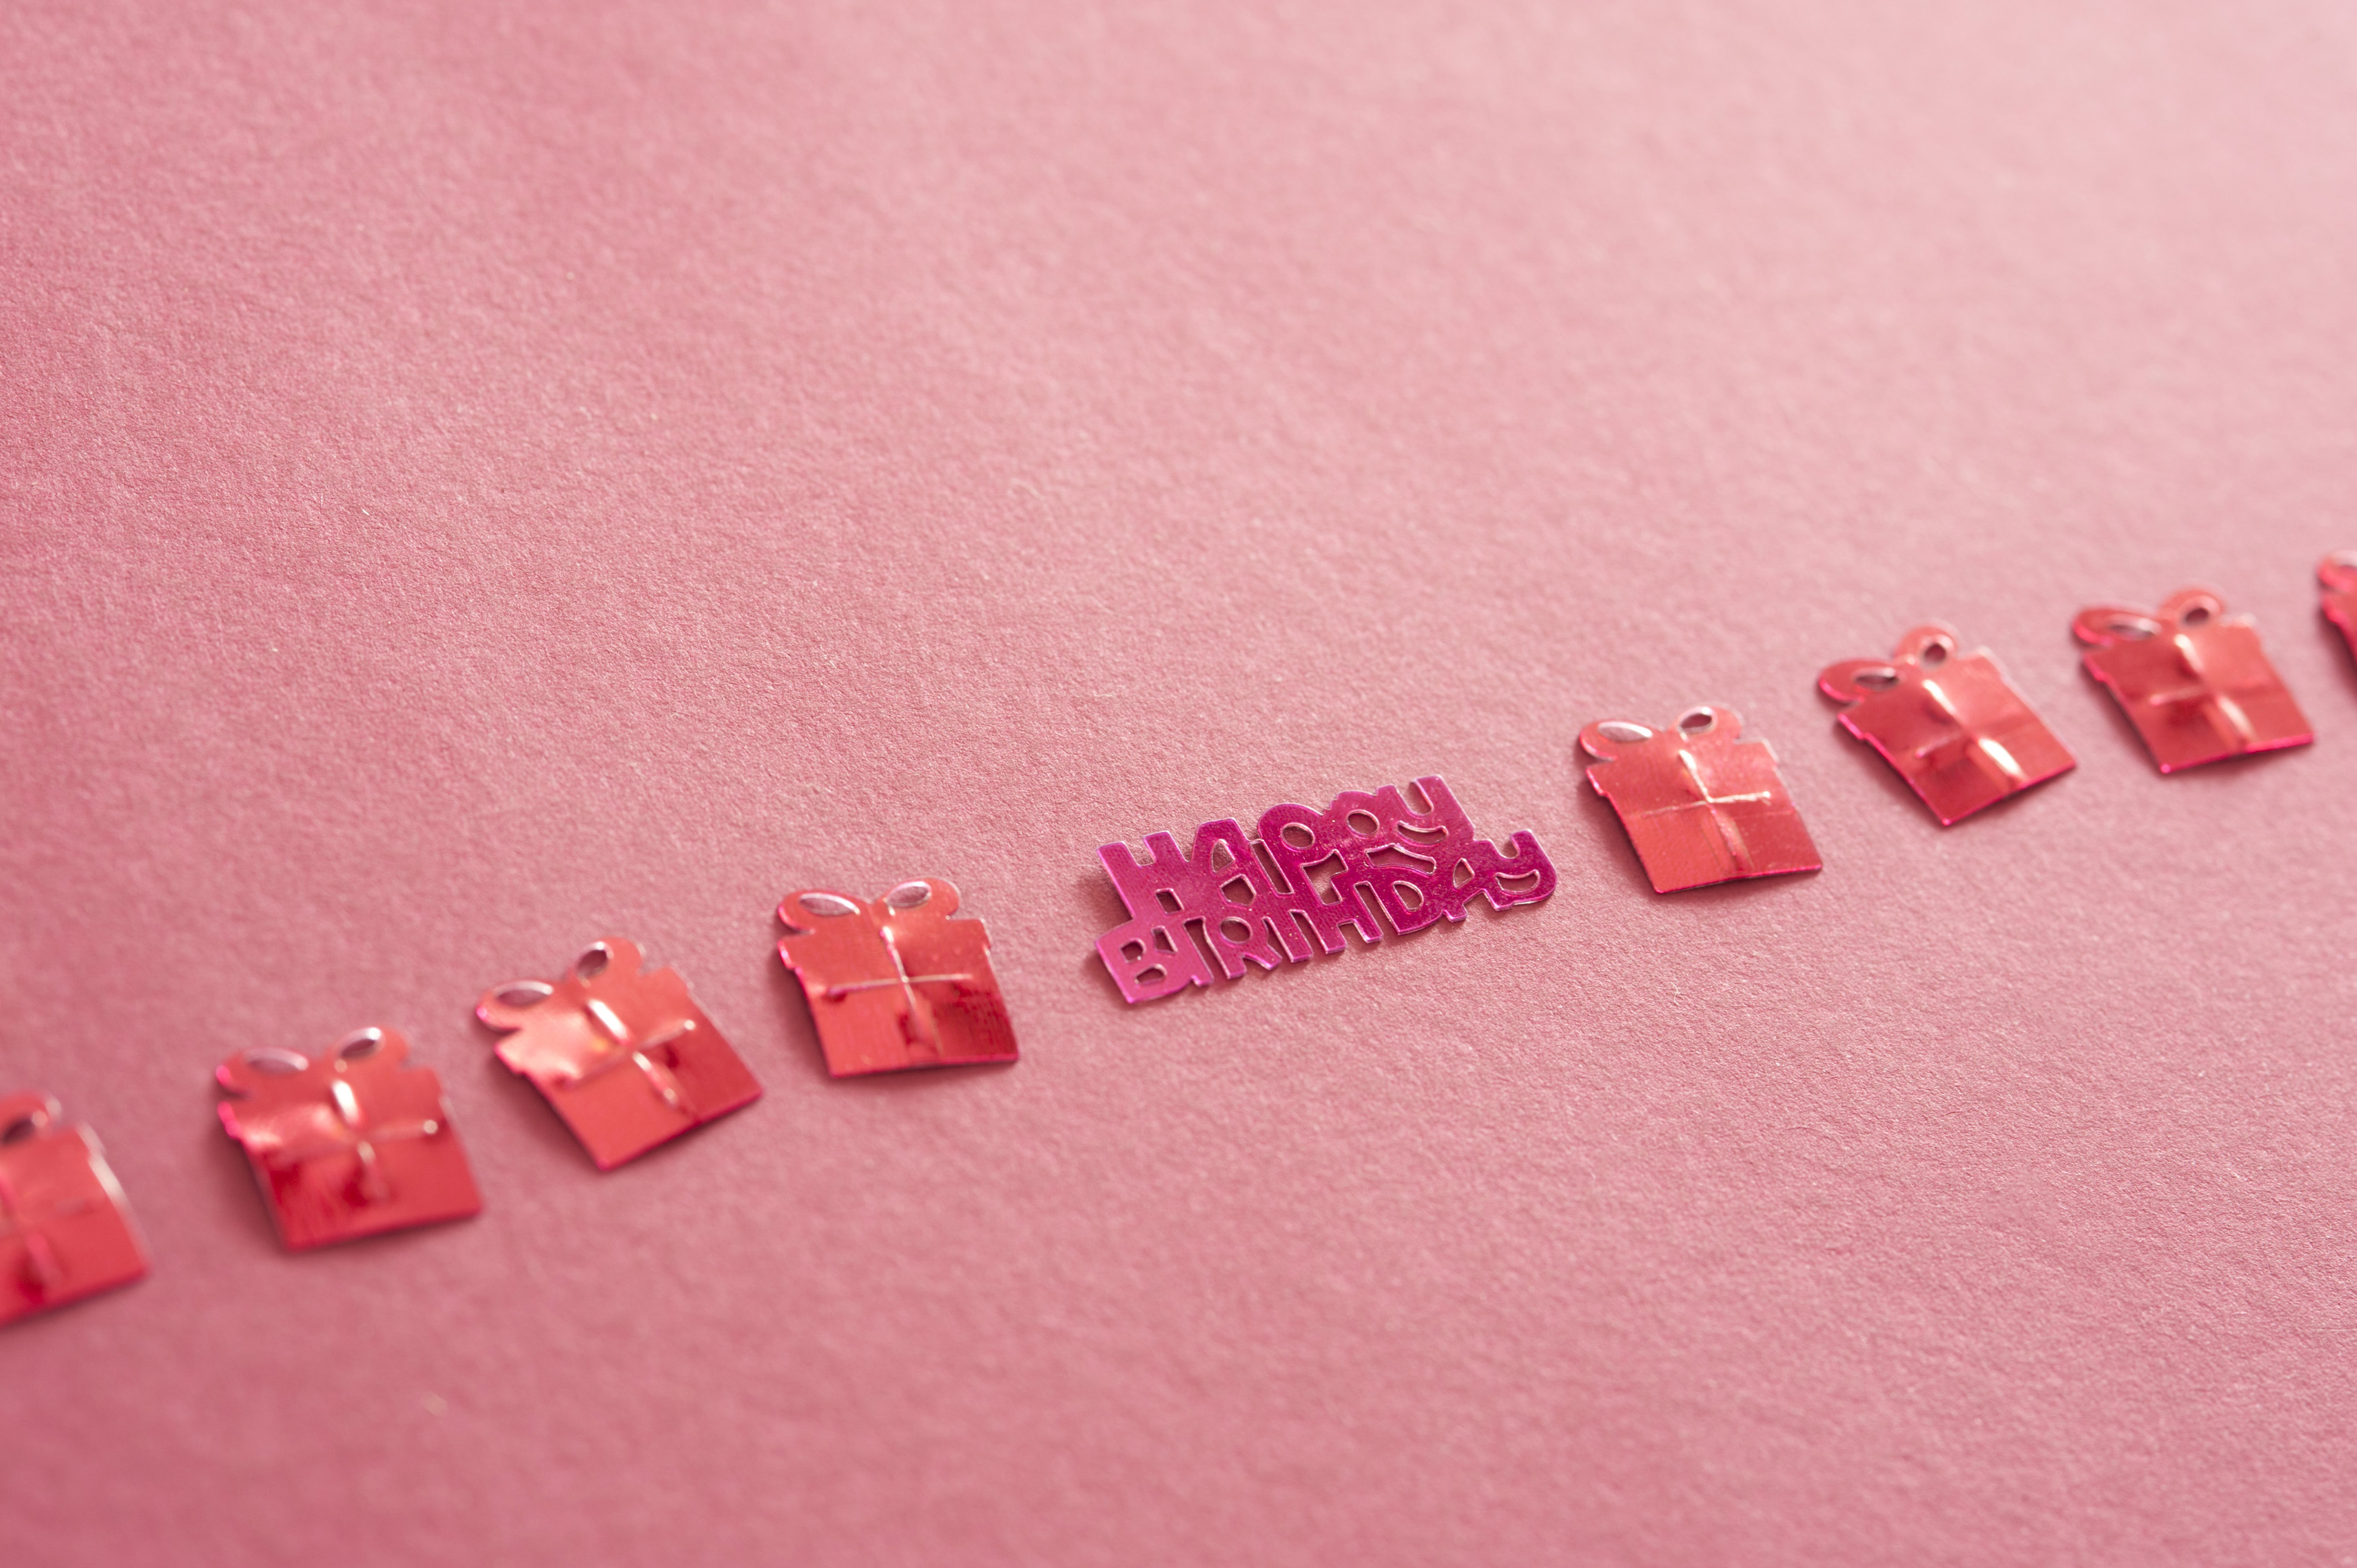 free stock photo 11435 happy birthday background for a girl